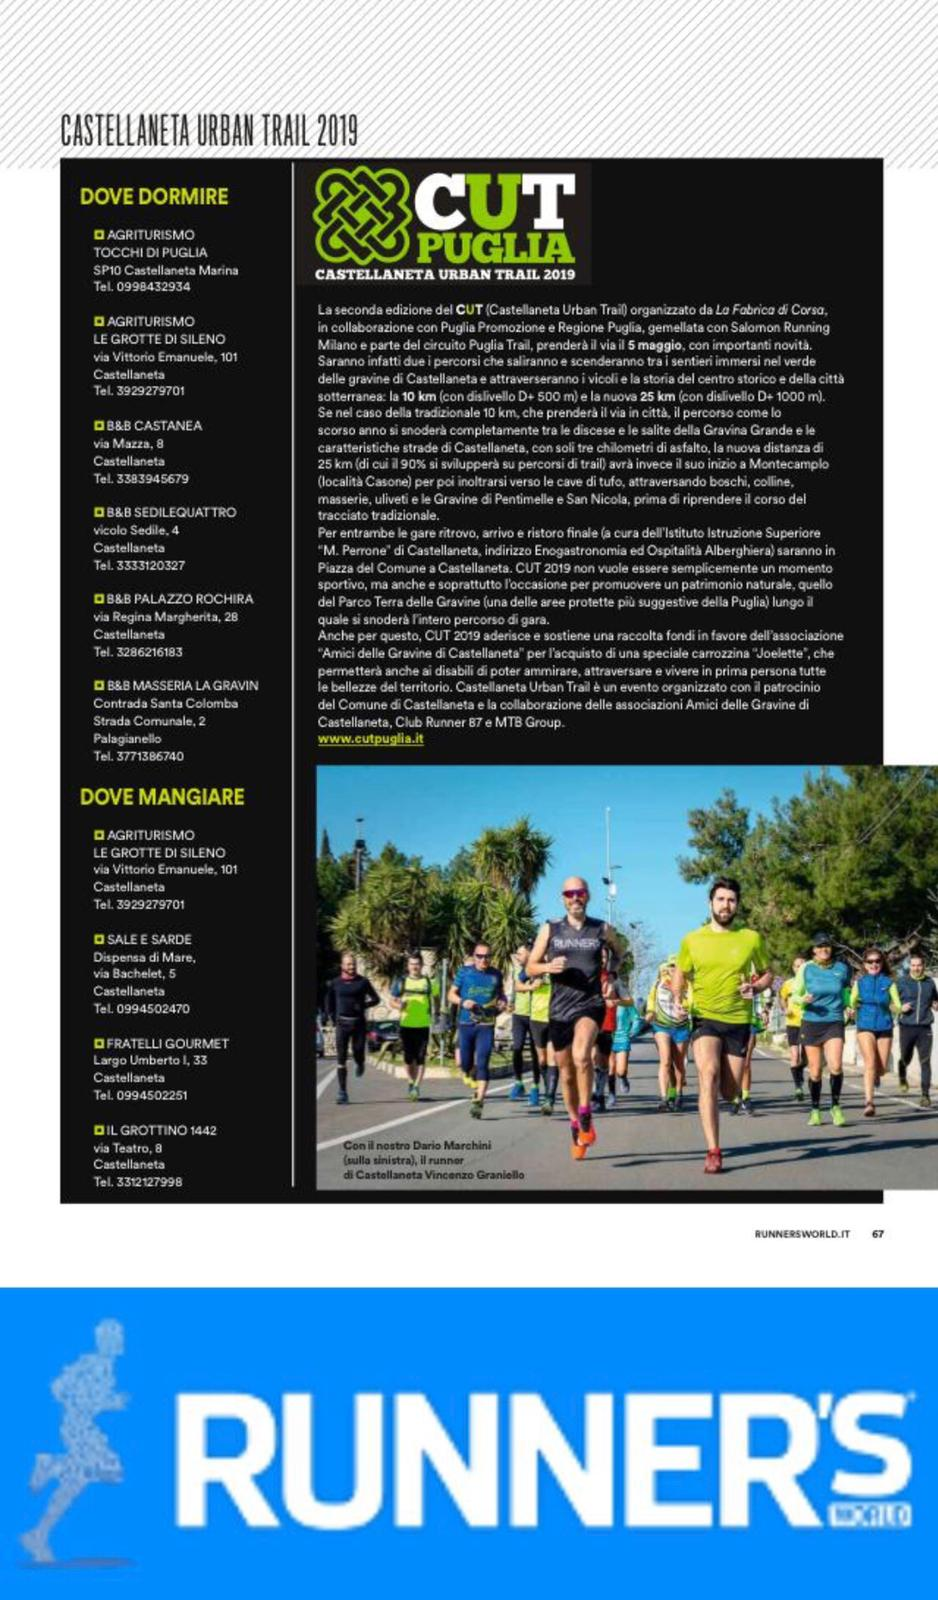 Runners World Speciale CUT 2019